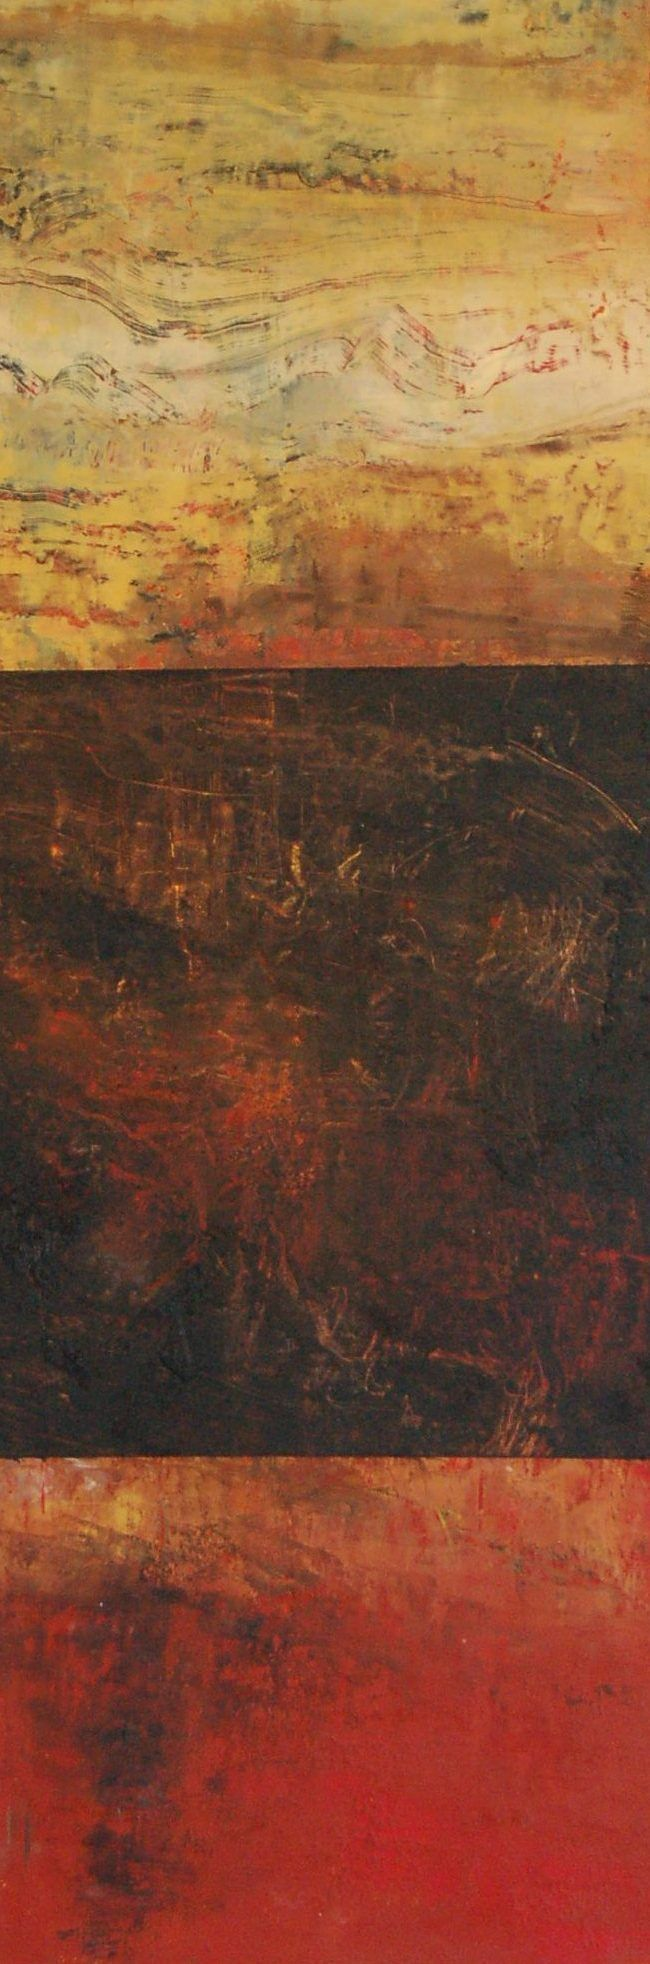 Contemporary Abstract Art, Oil, Wax, Mixed Media on Panel. By: Marie Therese Wekx